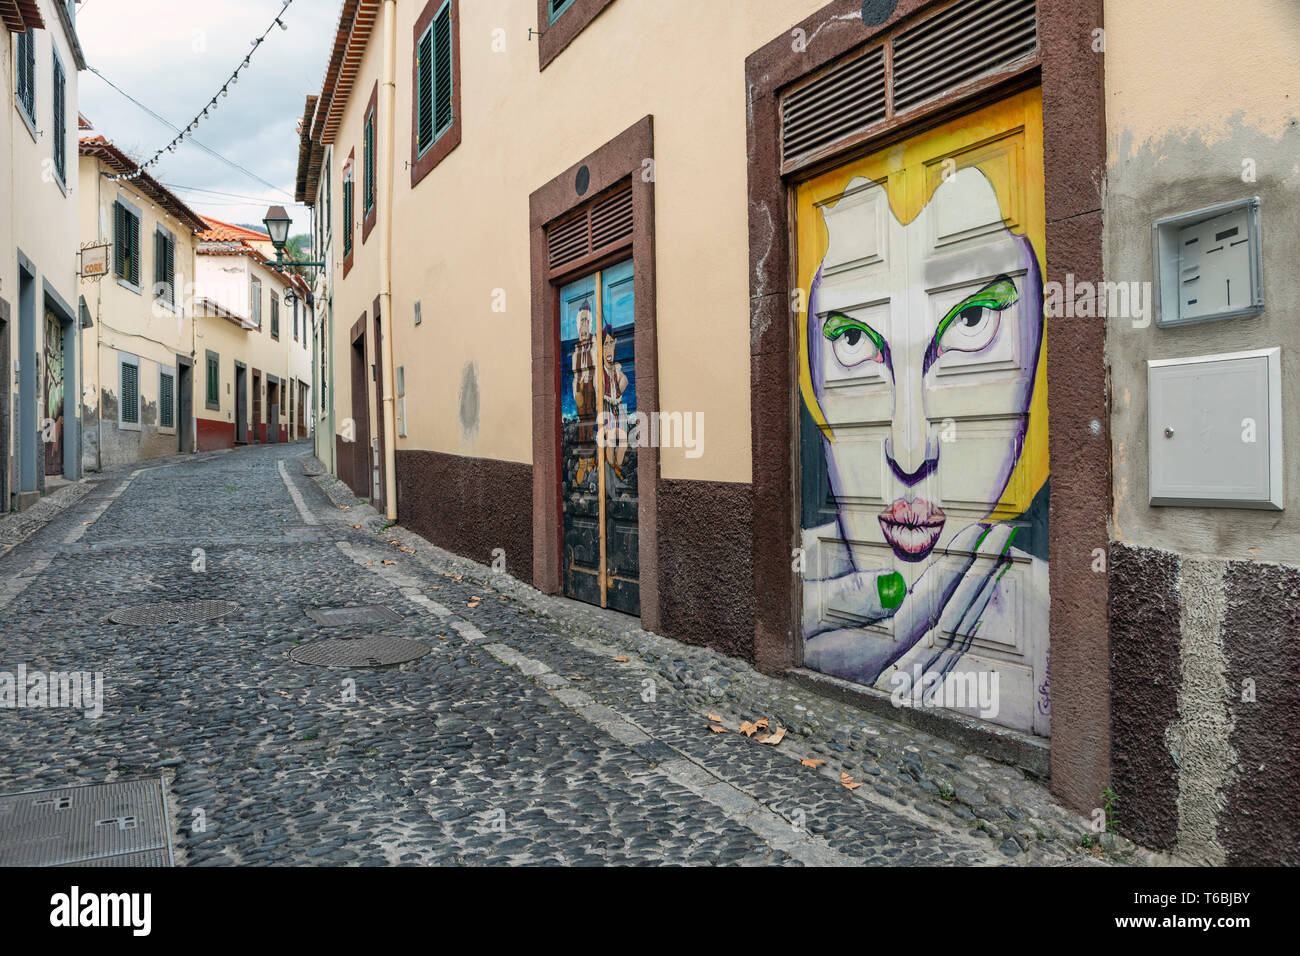 Murals painted as part of the Art of the Open Doors project in the Zona Velha (Old Town) area of Funchal, Madeira Stock Photo